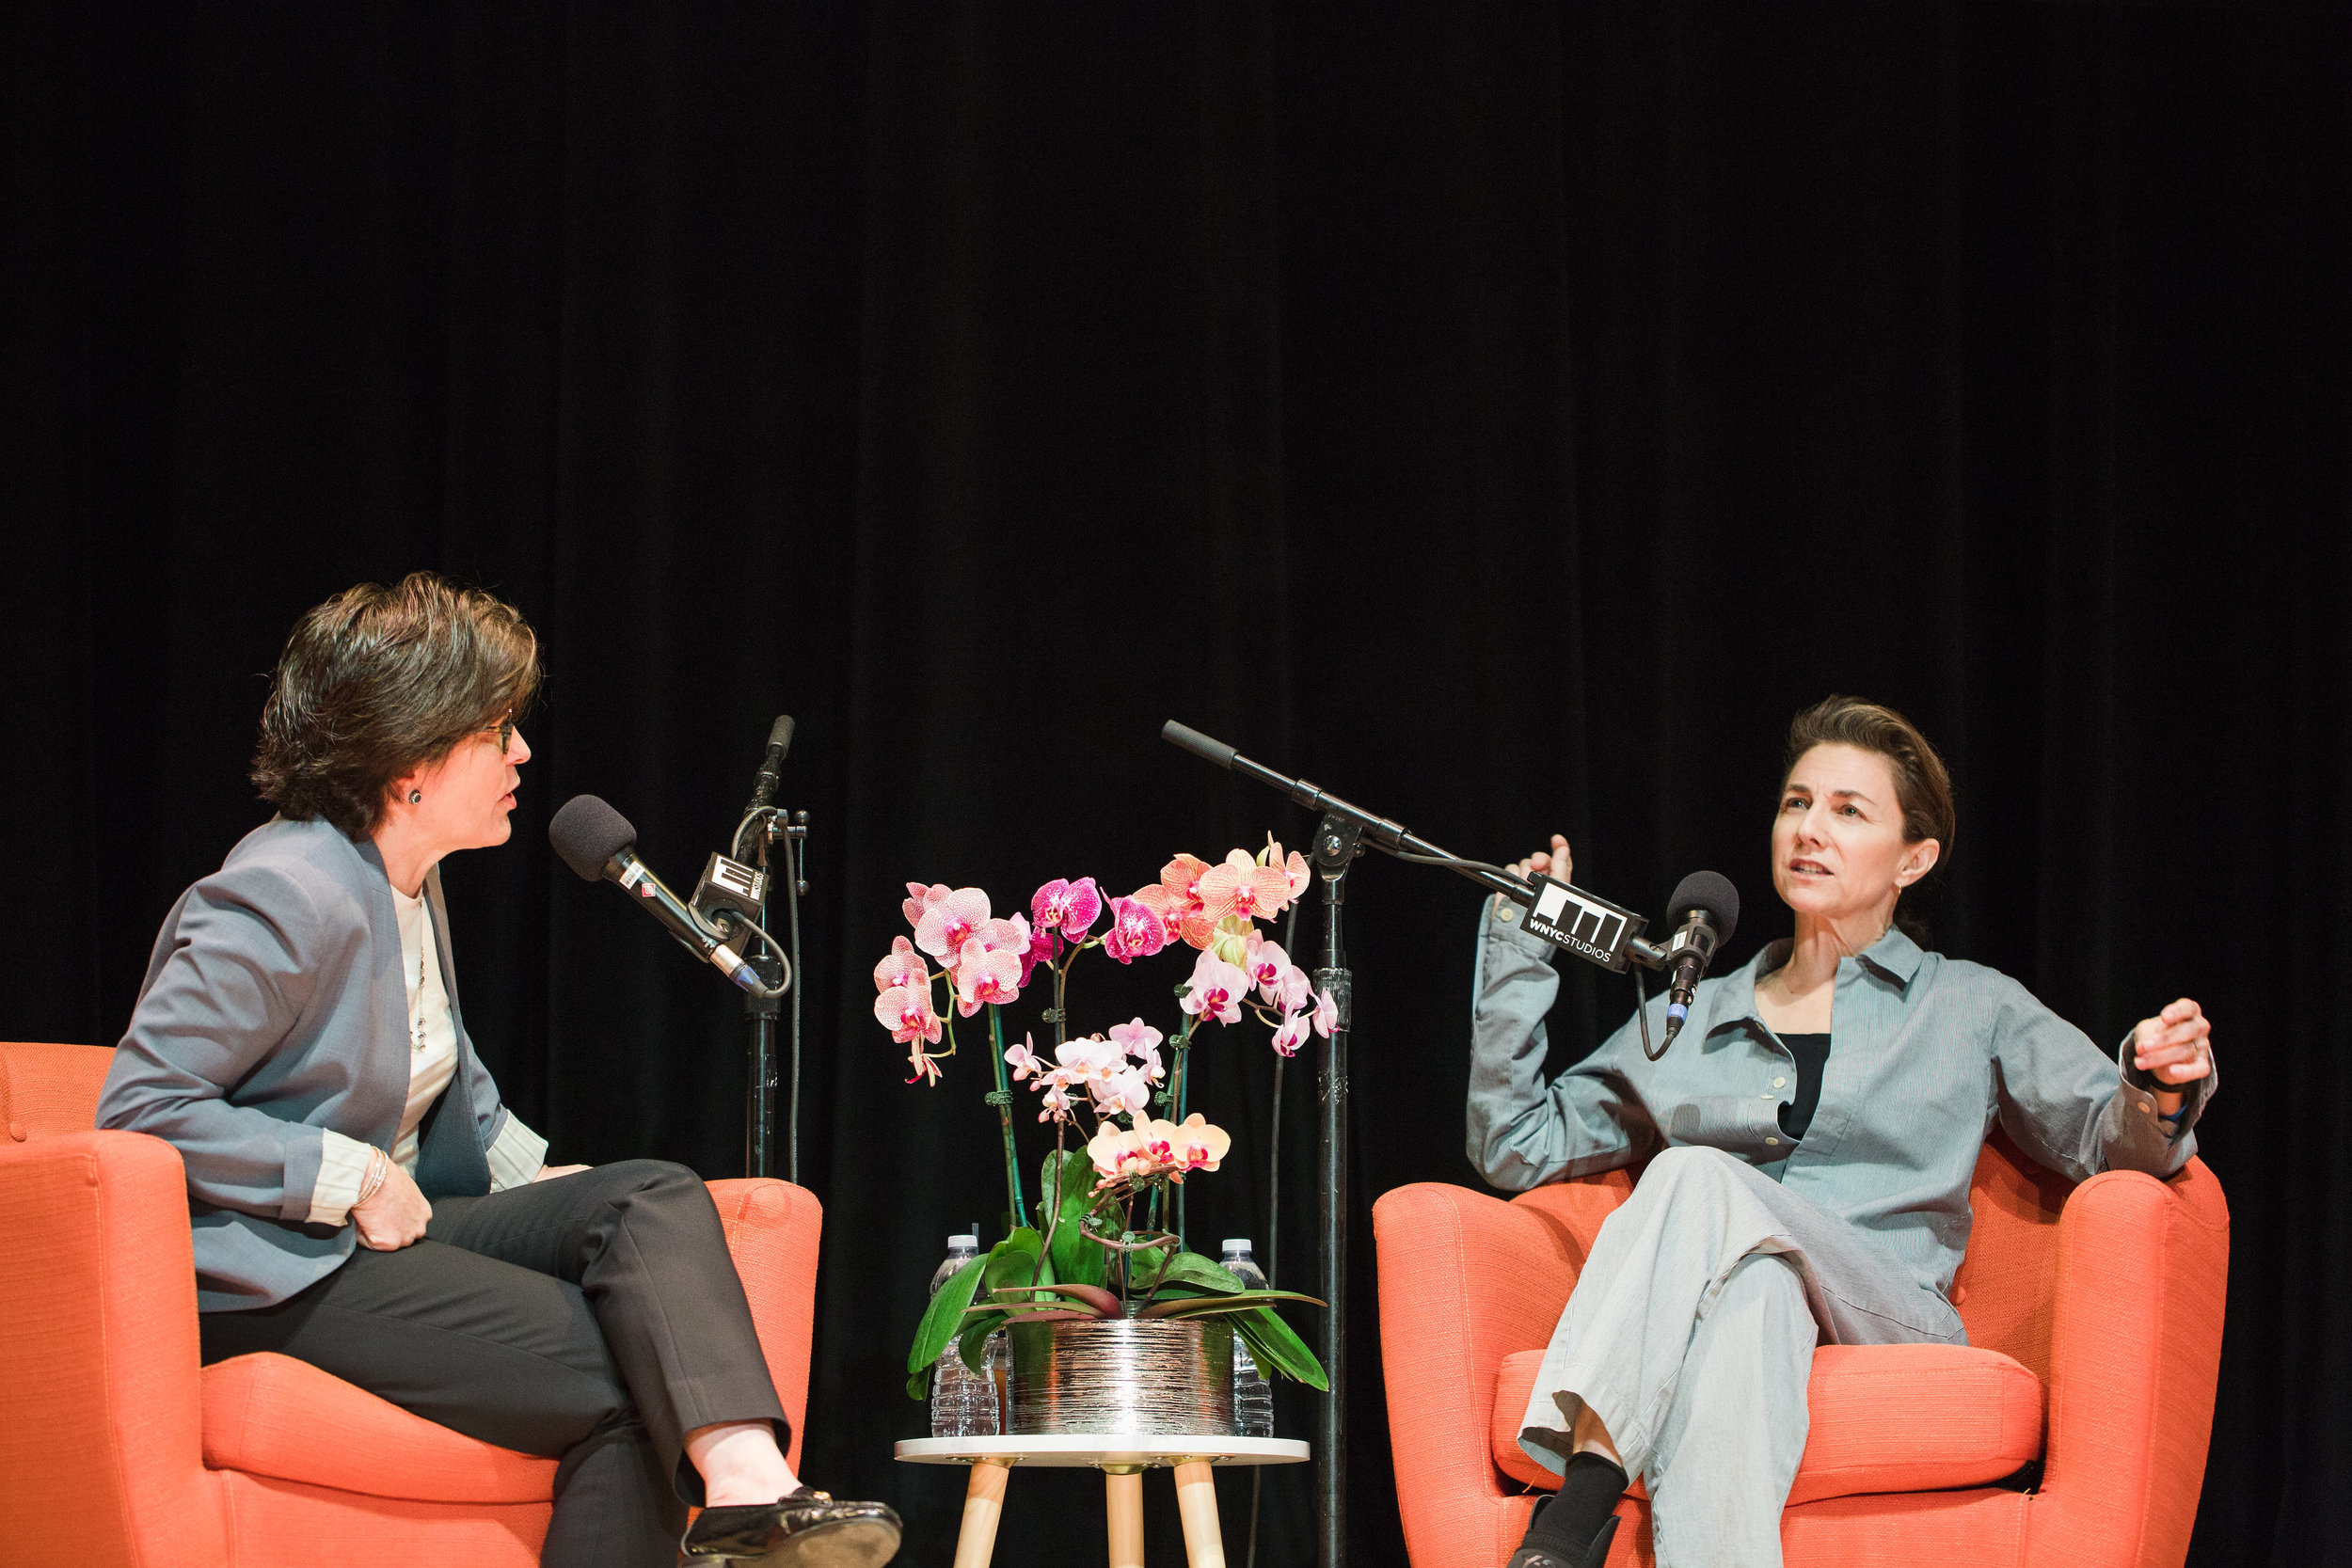 Kara Swisher on stage interview for Recode/Decode